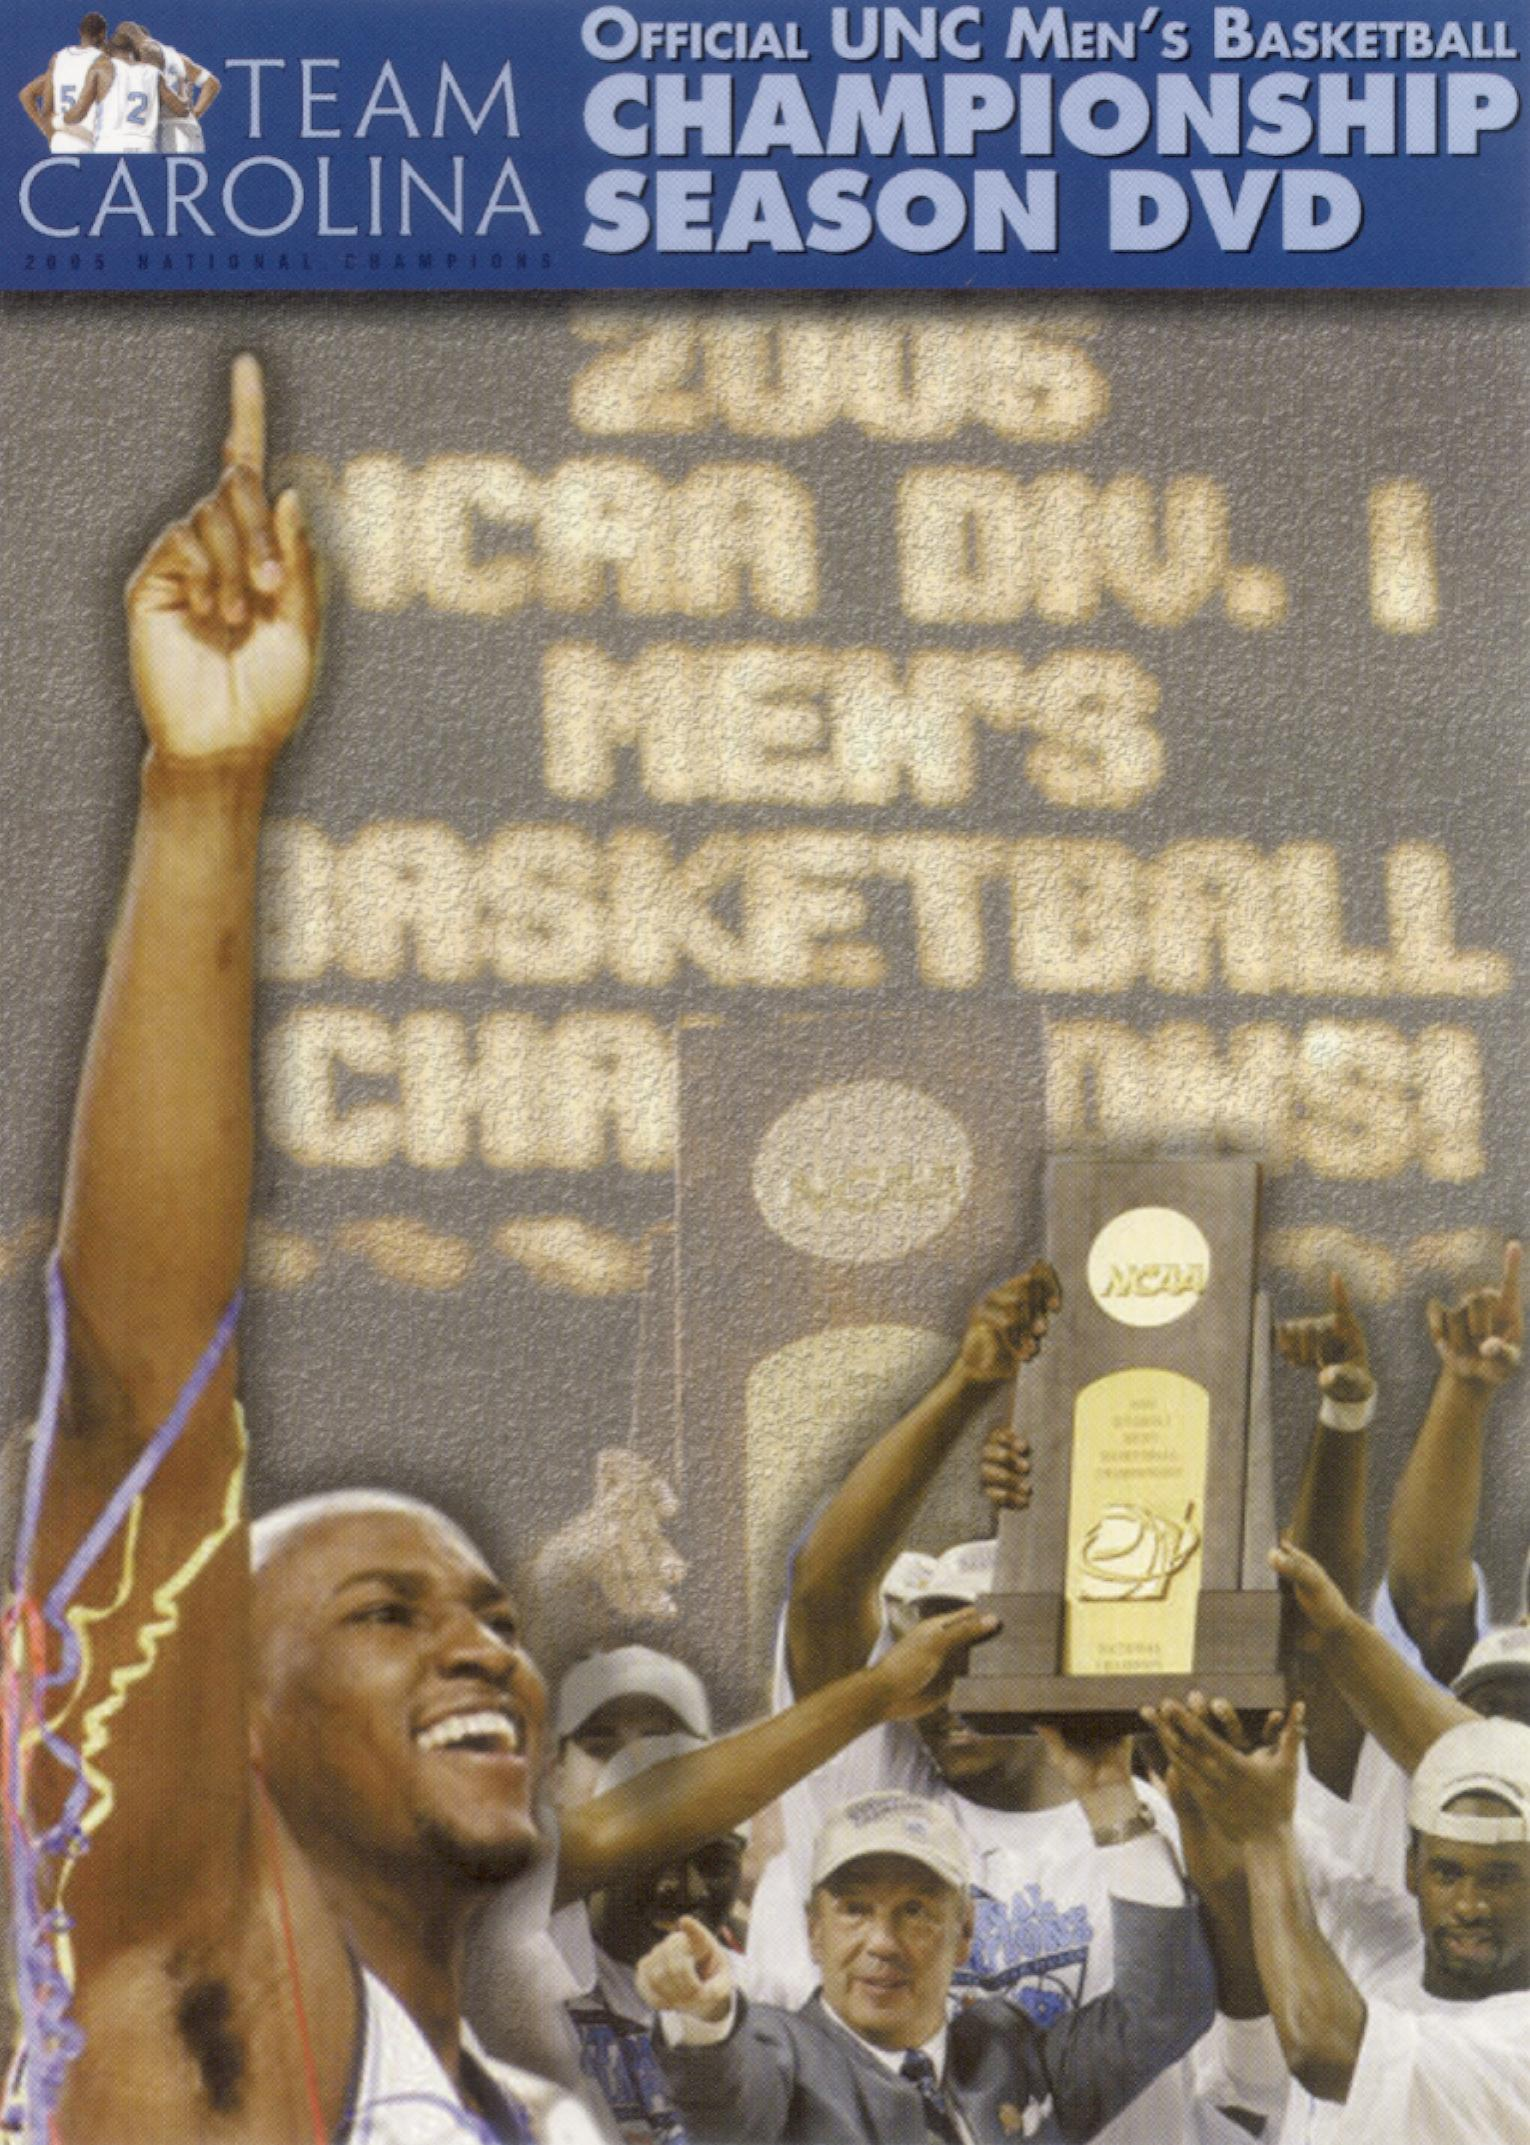 Team Carolina: 2004-2005 Official UNC Men's Basketball, Championship Season